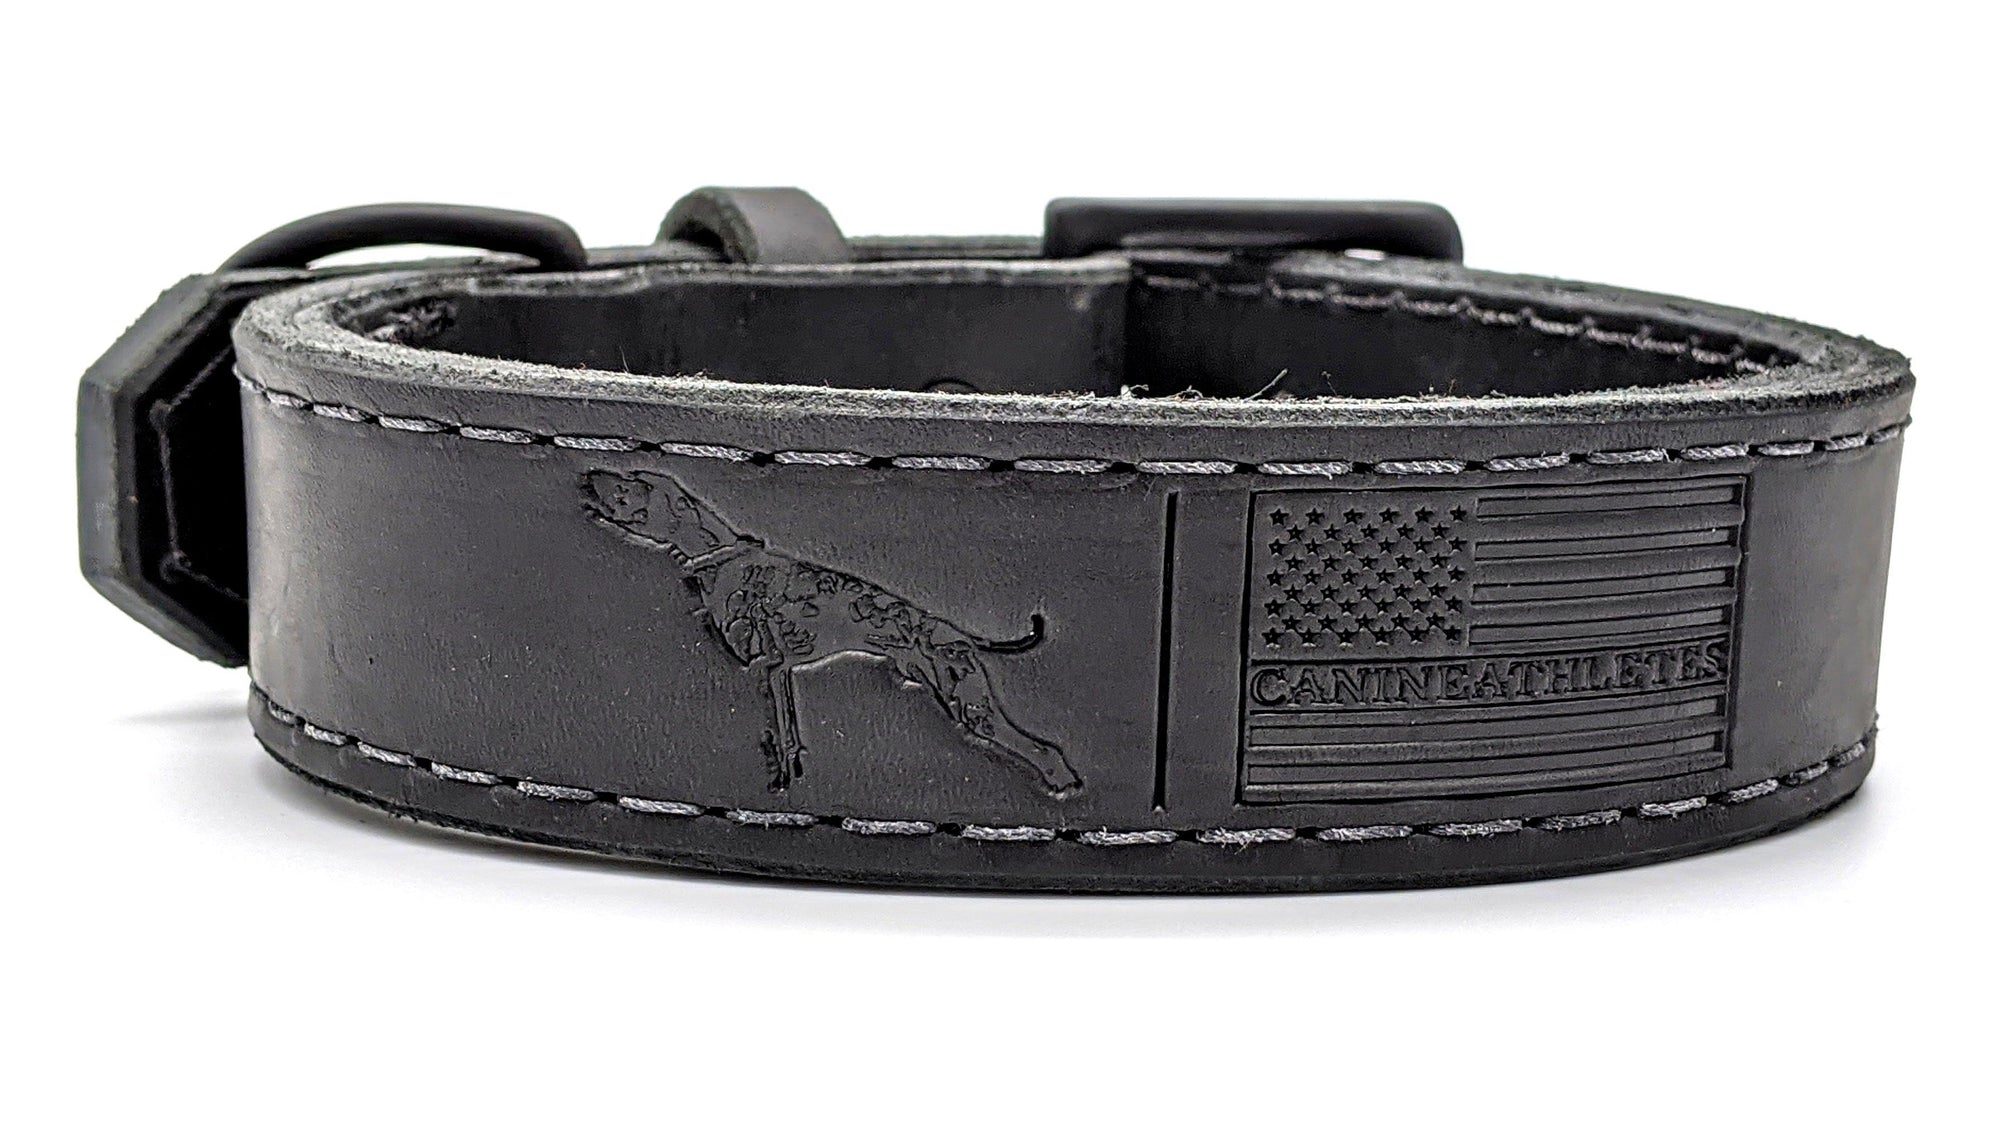 Canine Athletes x TGR Black Leather Agitation Dog Collar